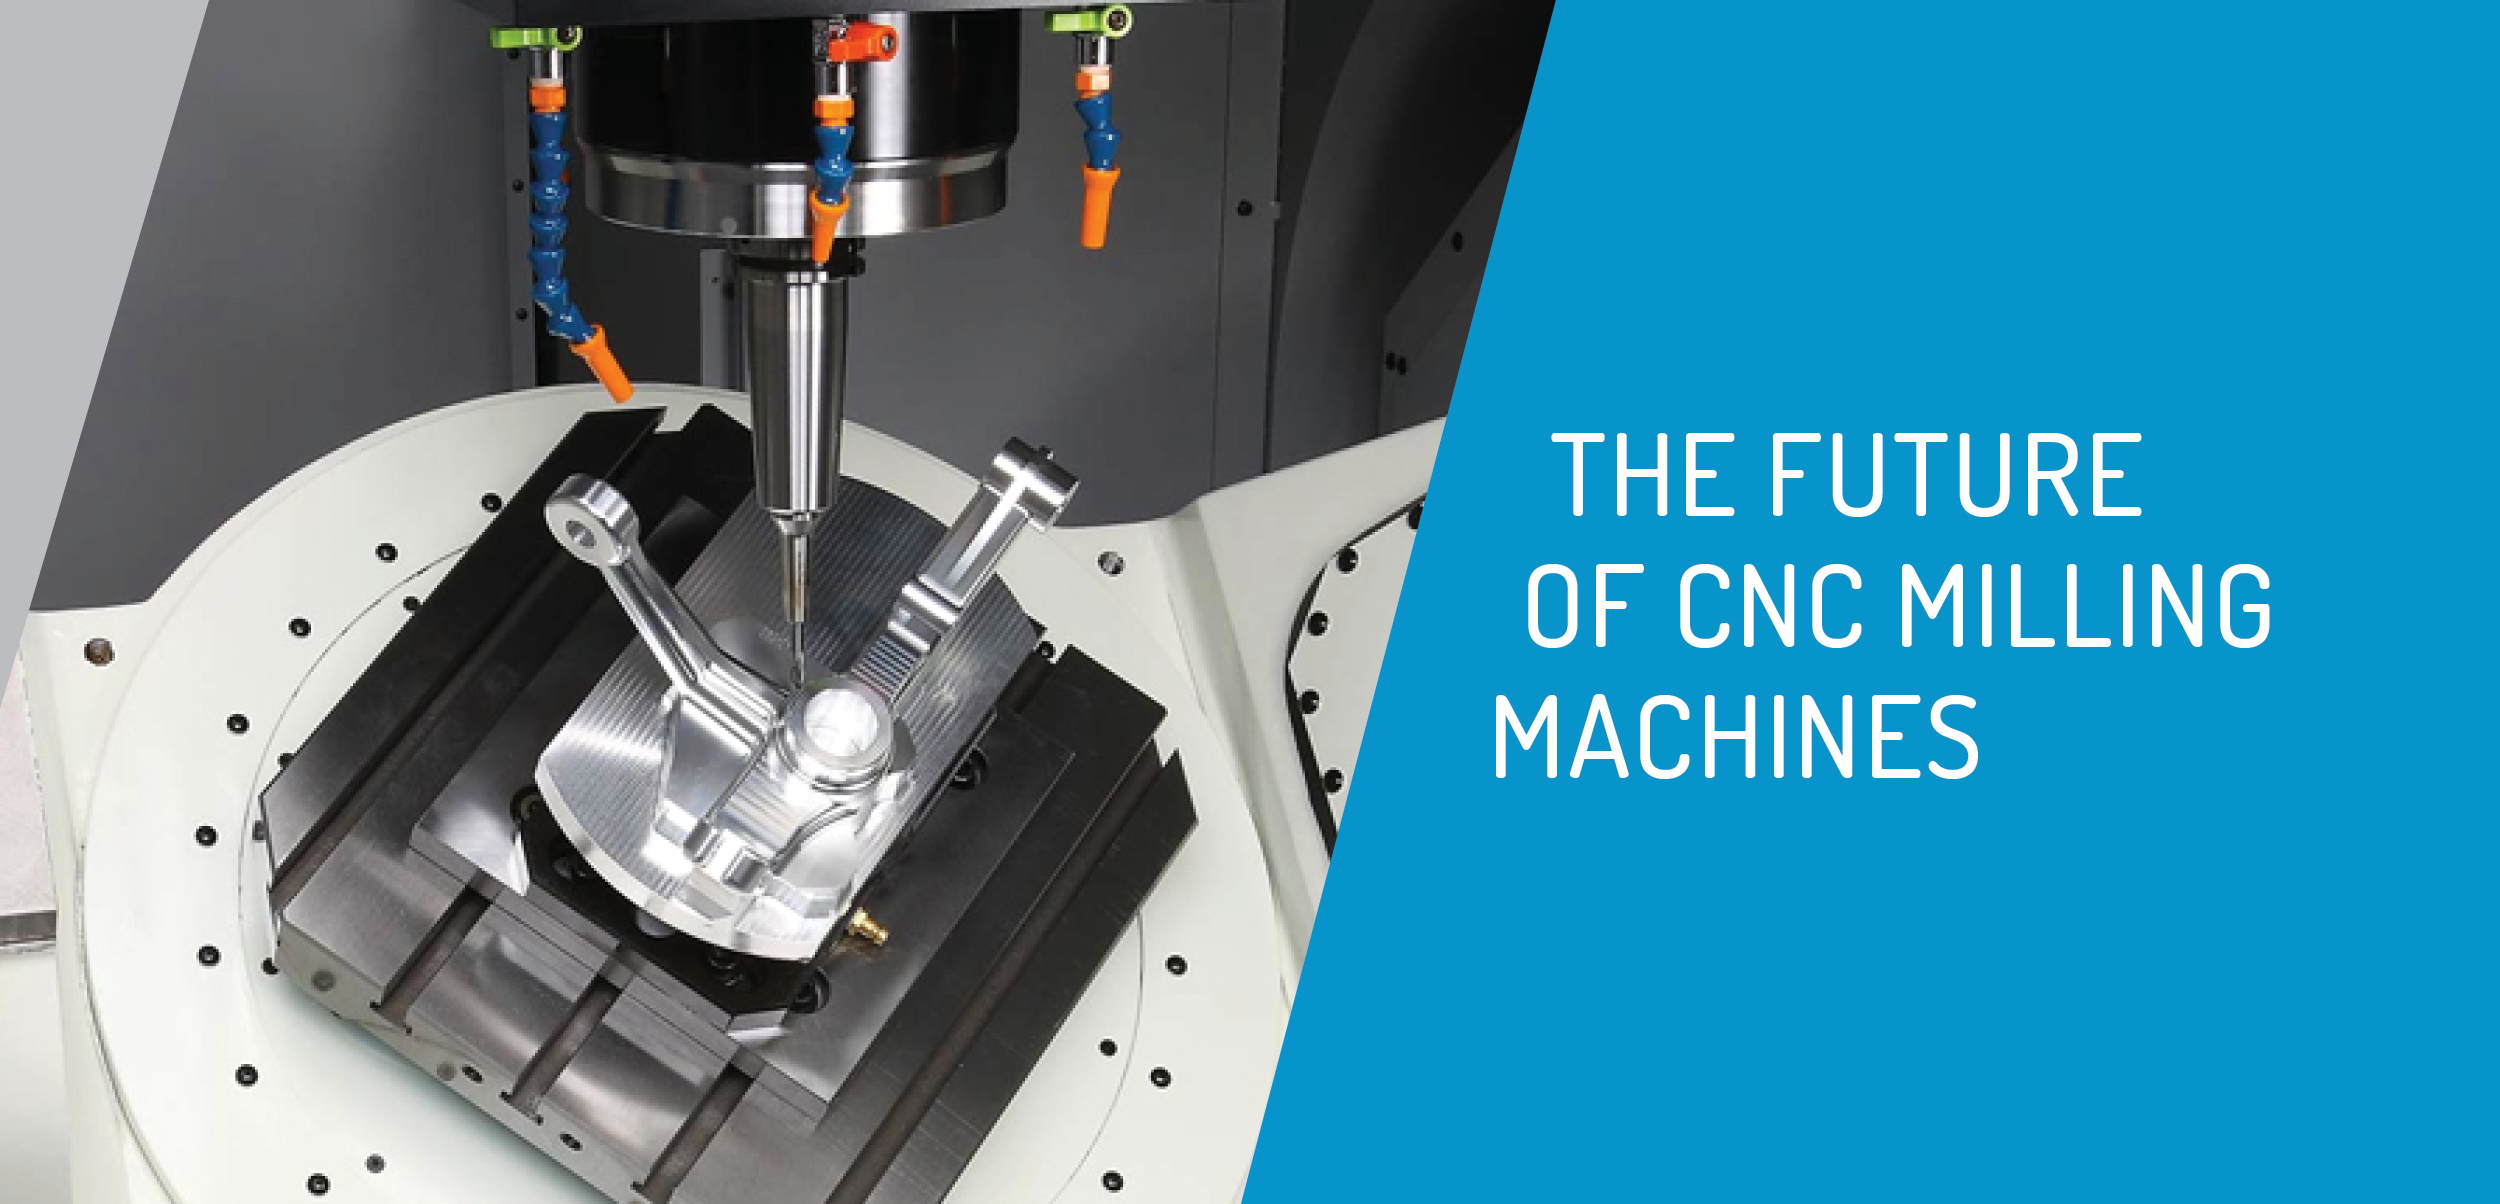 The Future of CNC Milling Machines